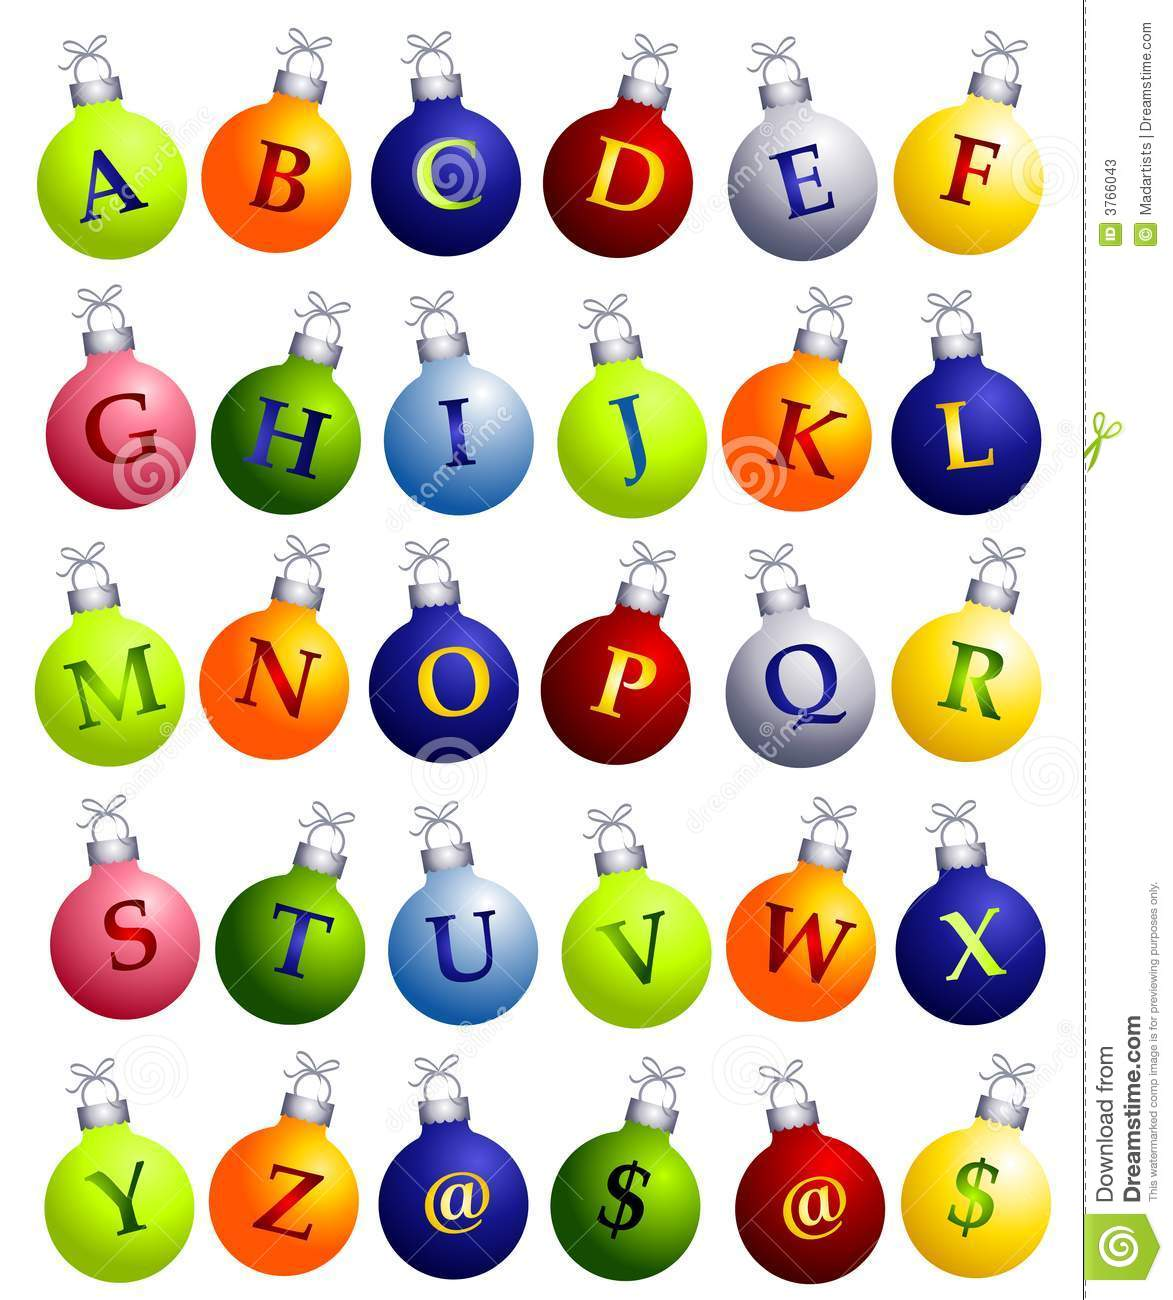 download alphabet on christmas ornaments stock illustration illustration of images illustrated 3766043